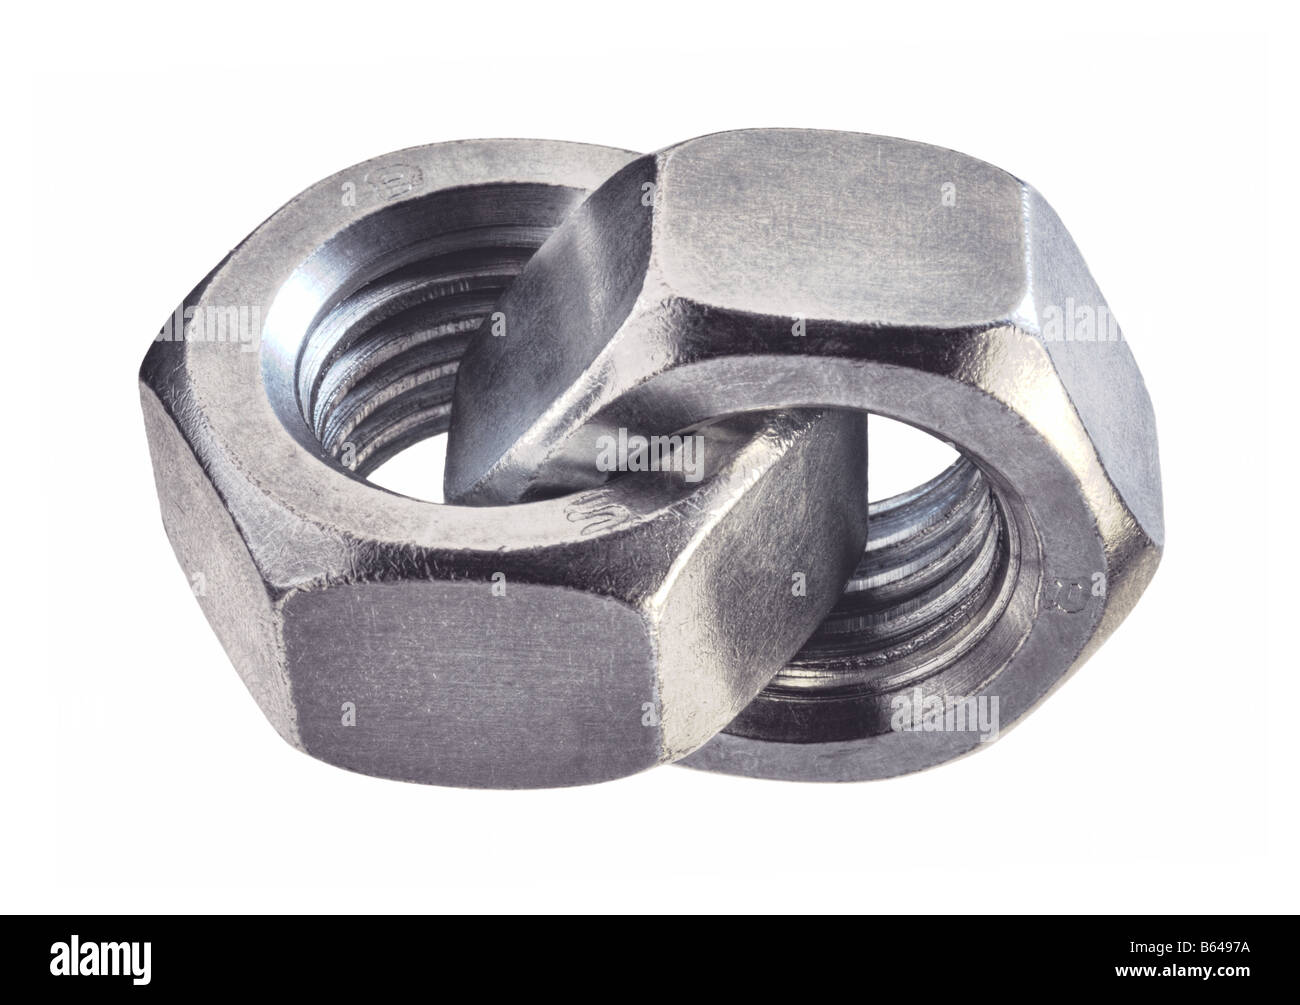 Bolts joined together Stock Photo